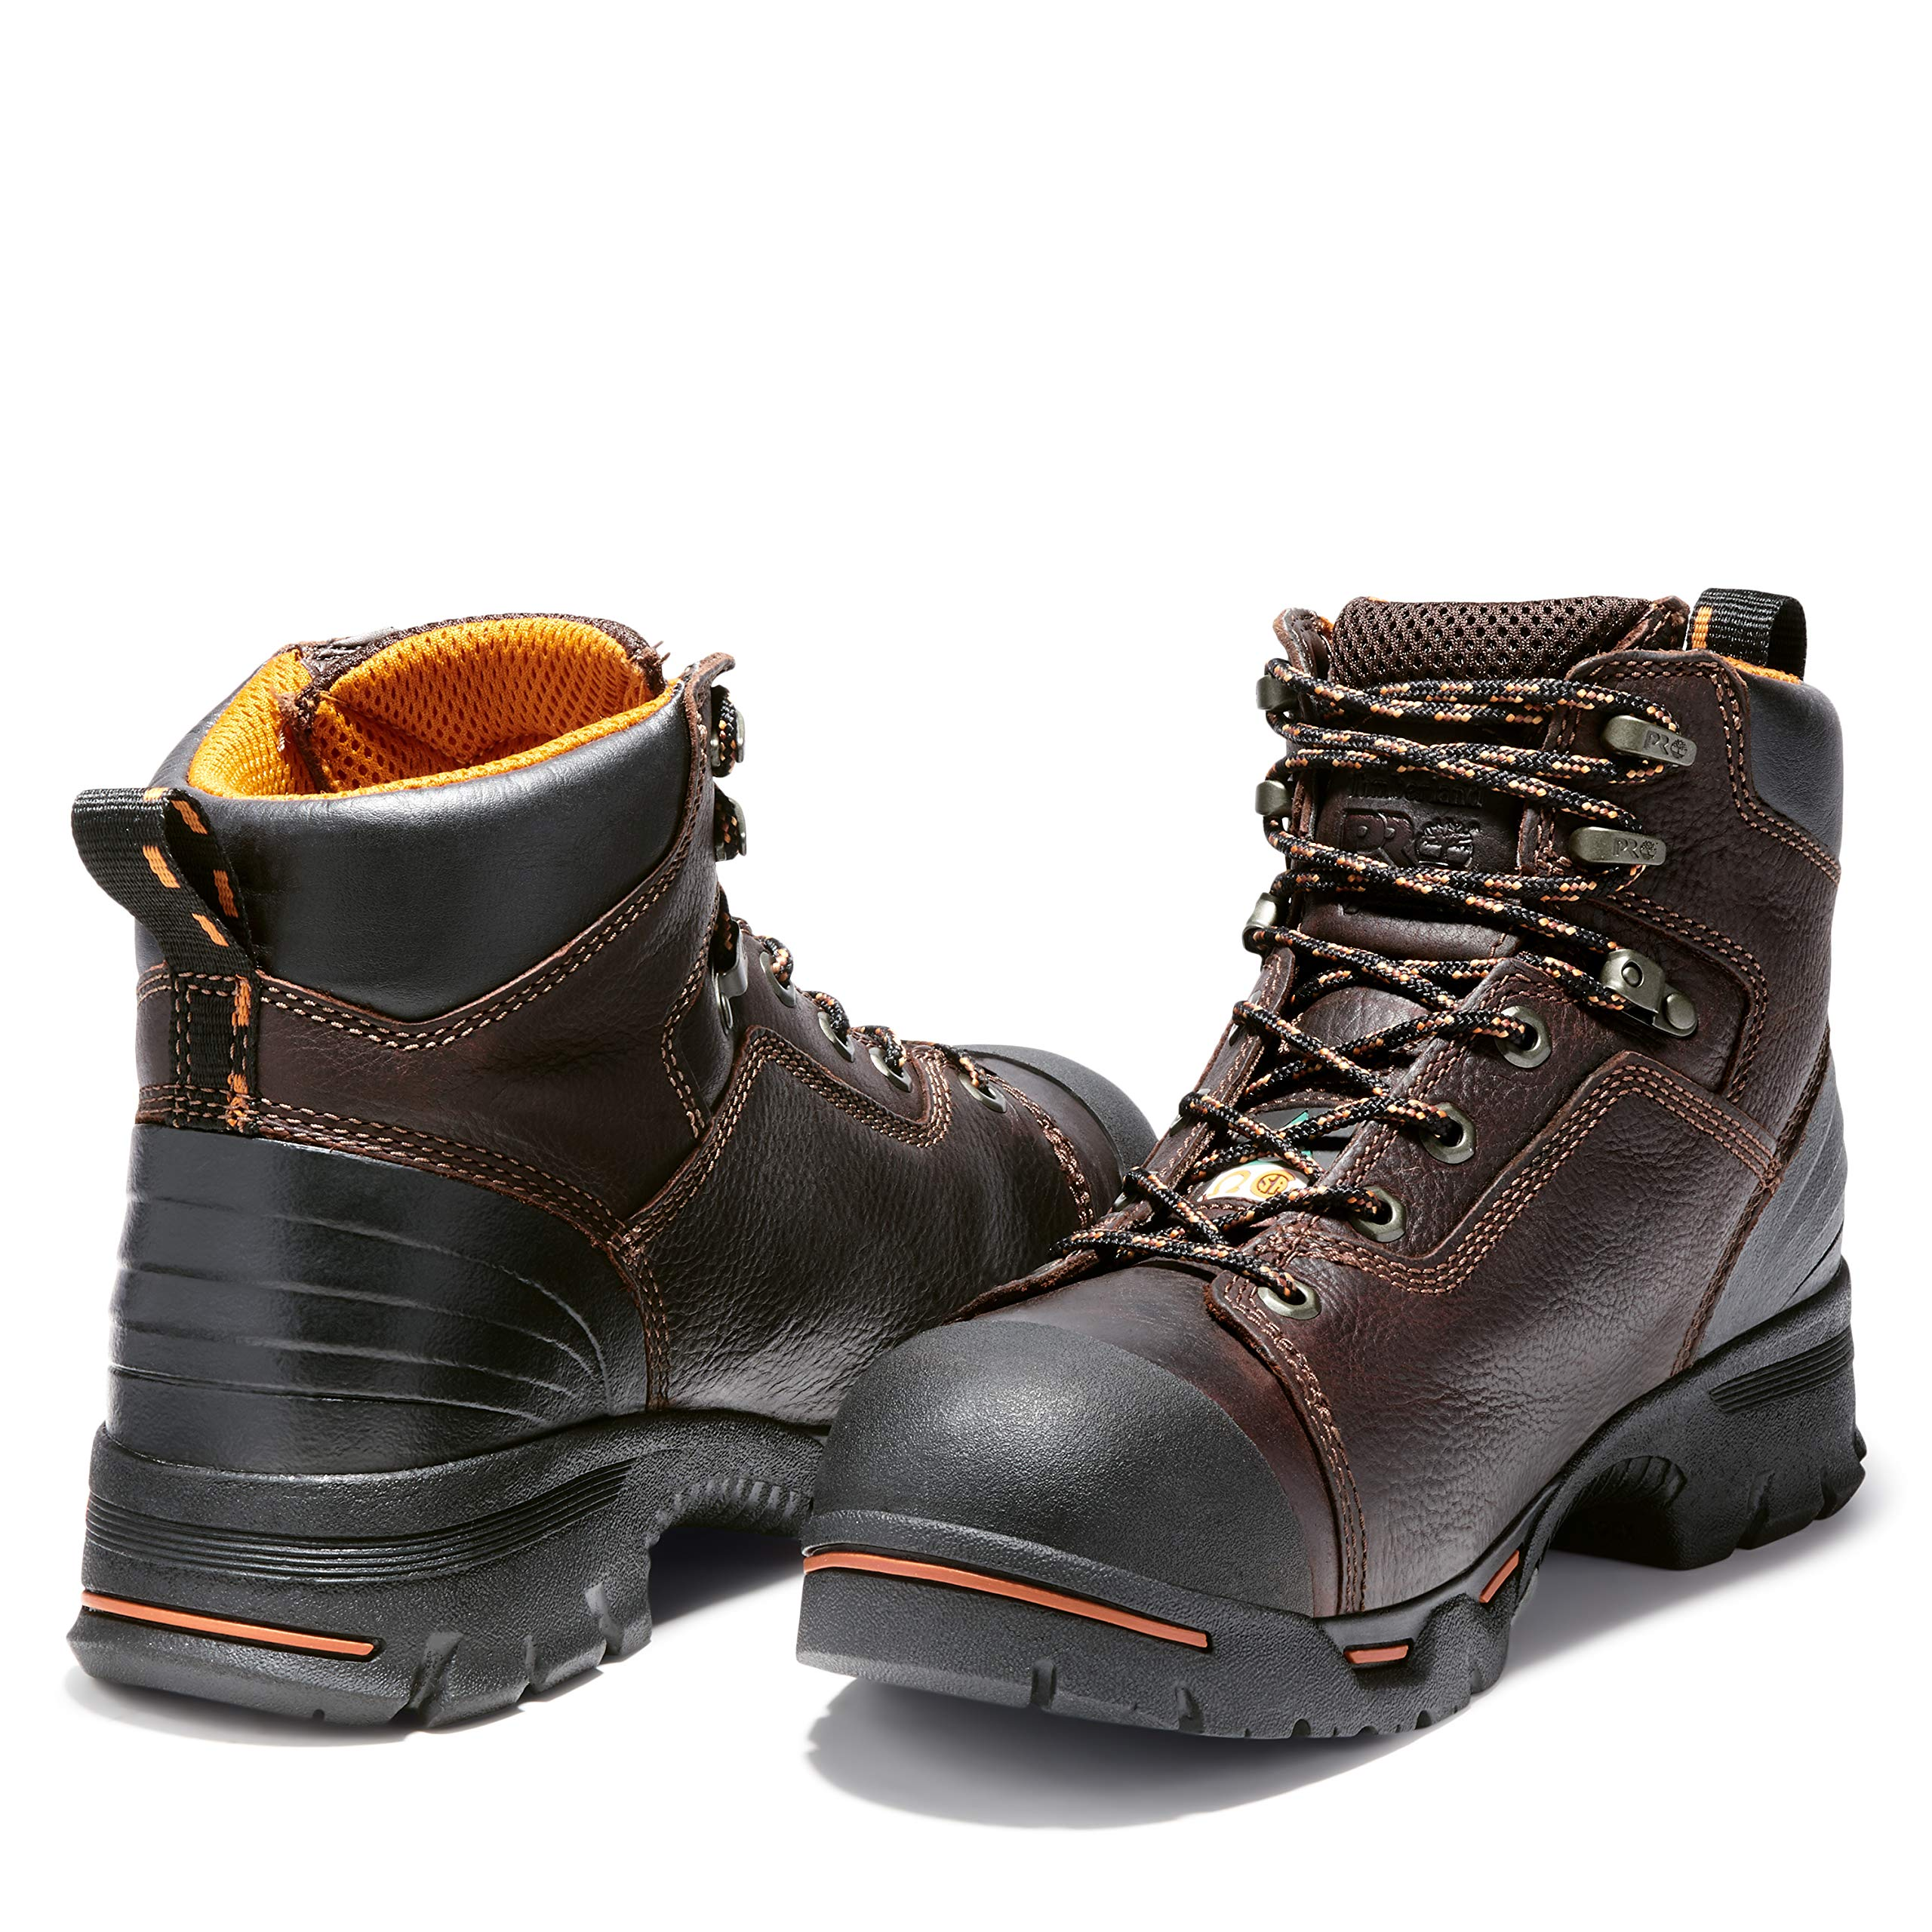 These boots are our Best Value choice for electricians.